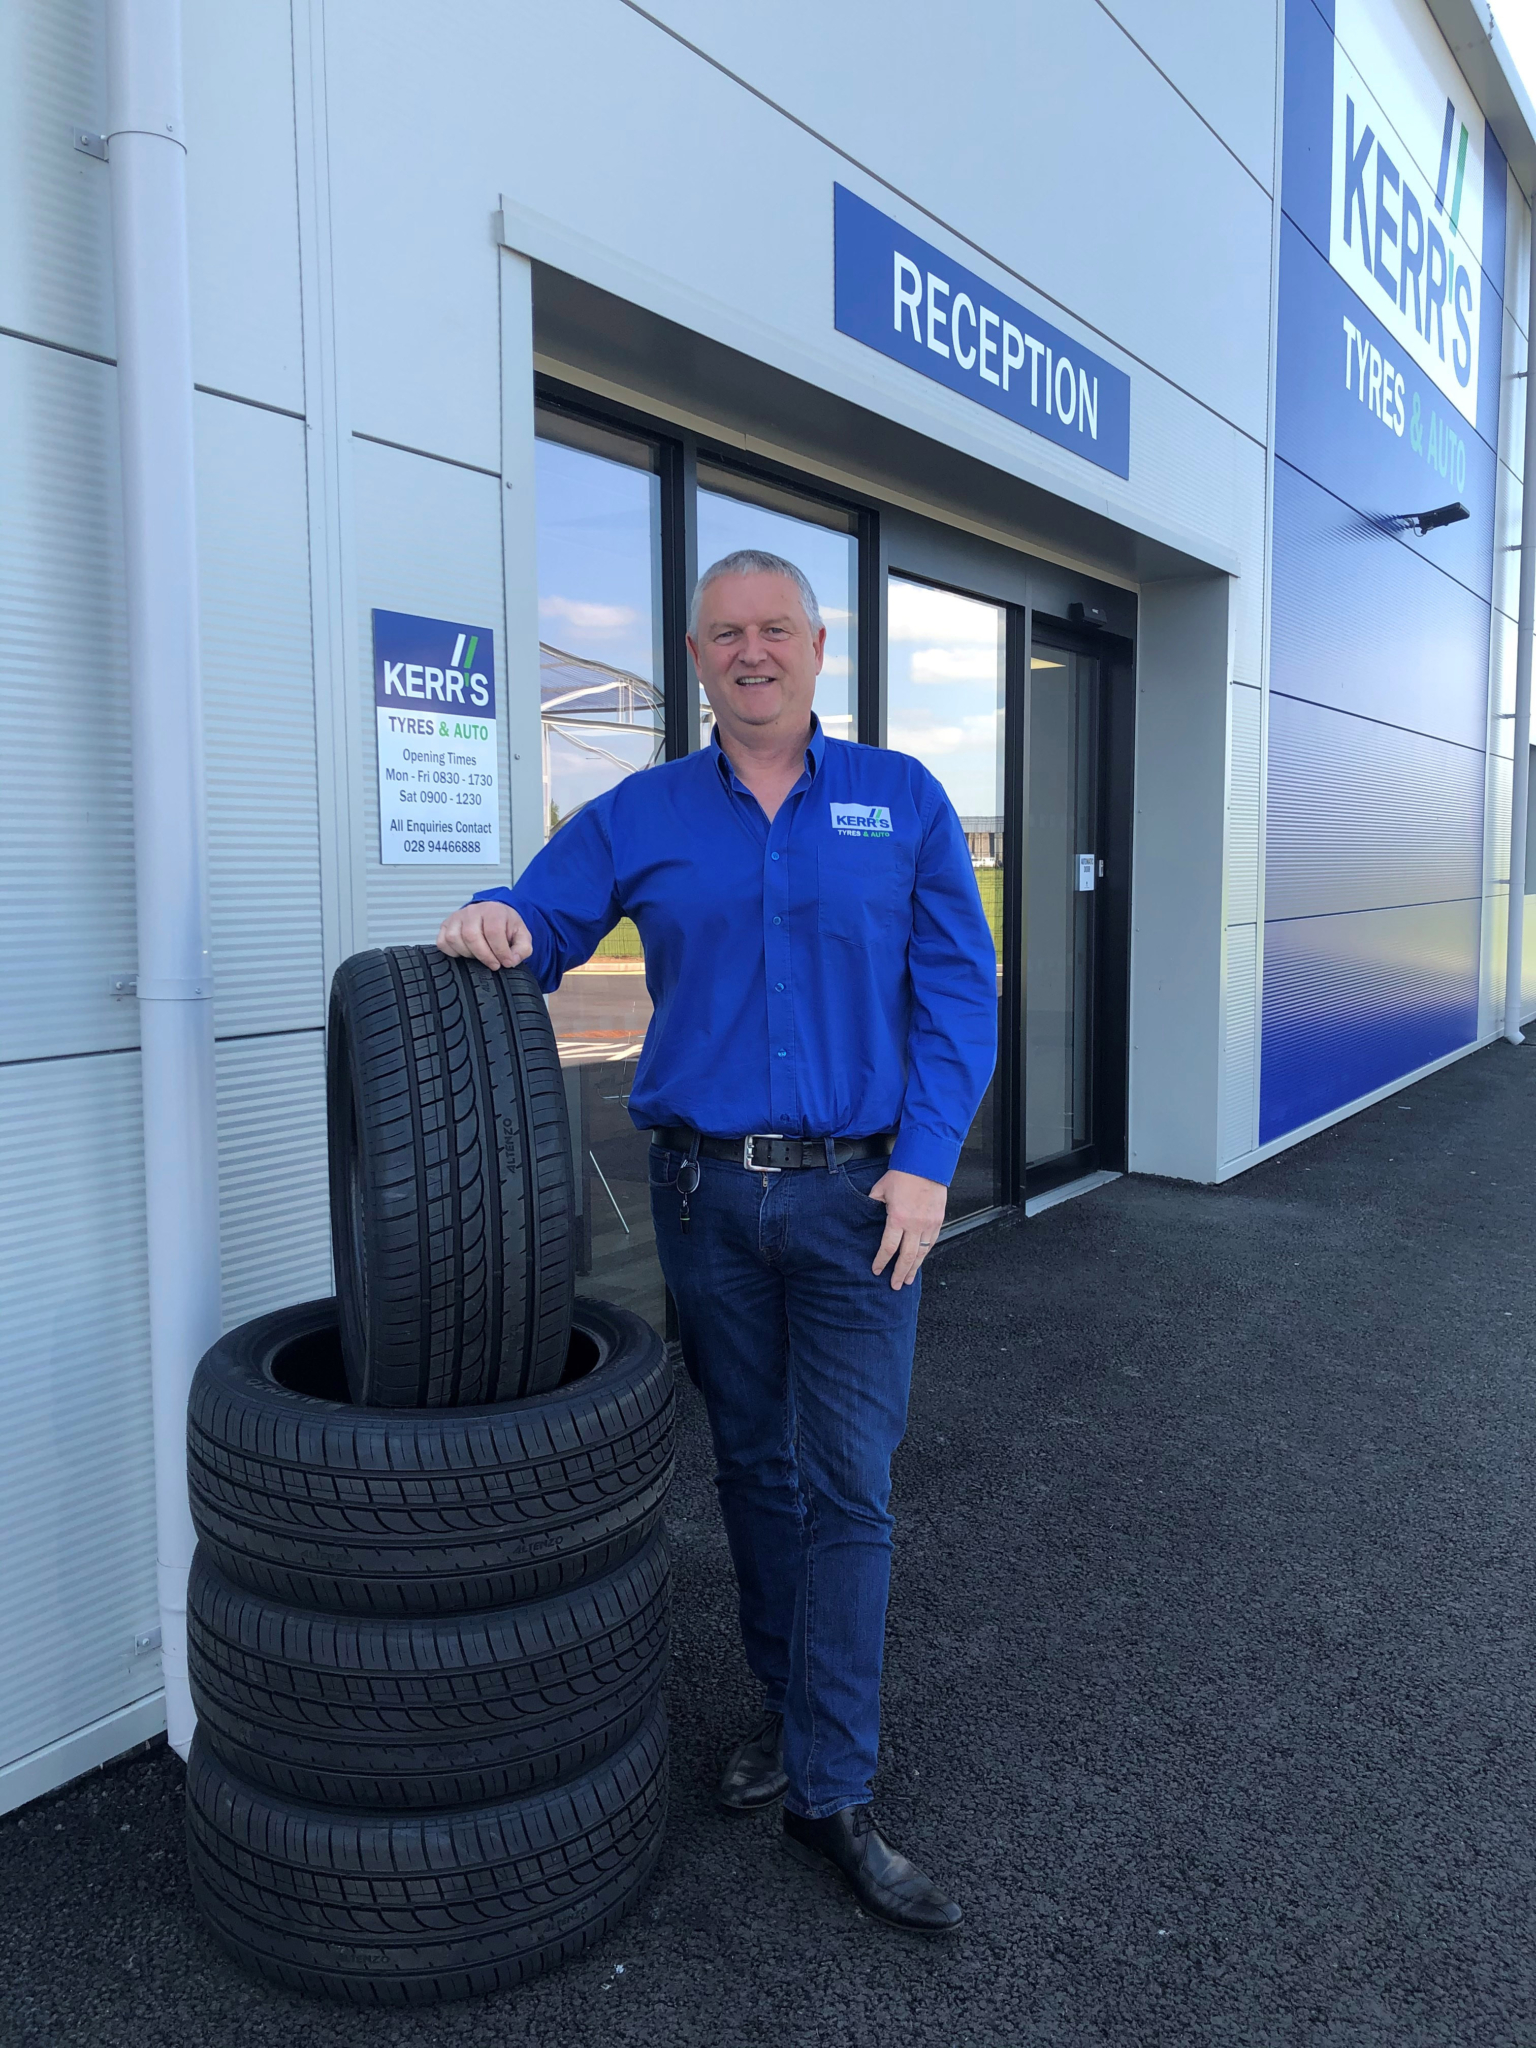 Kerr's Tyres secures £500k funding from Ulster Bank